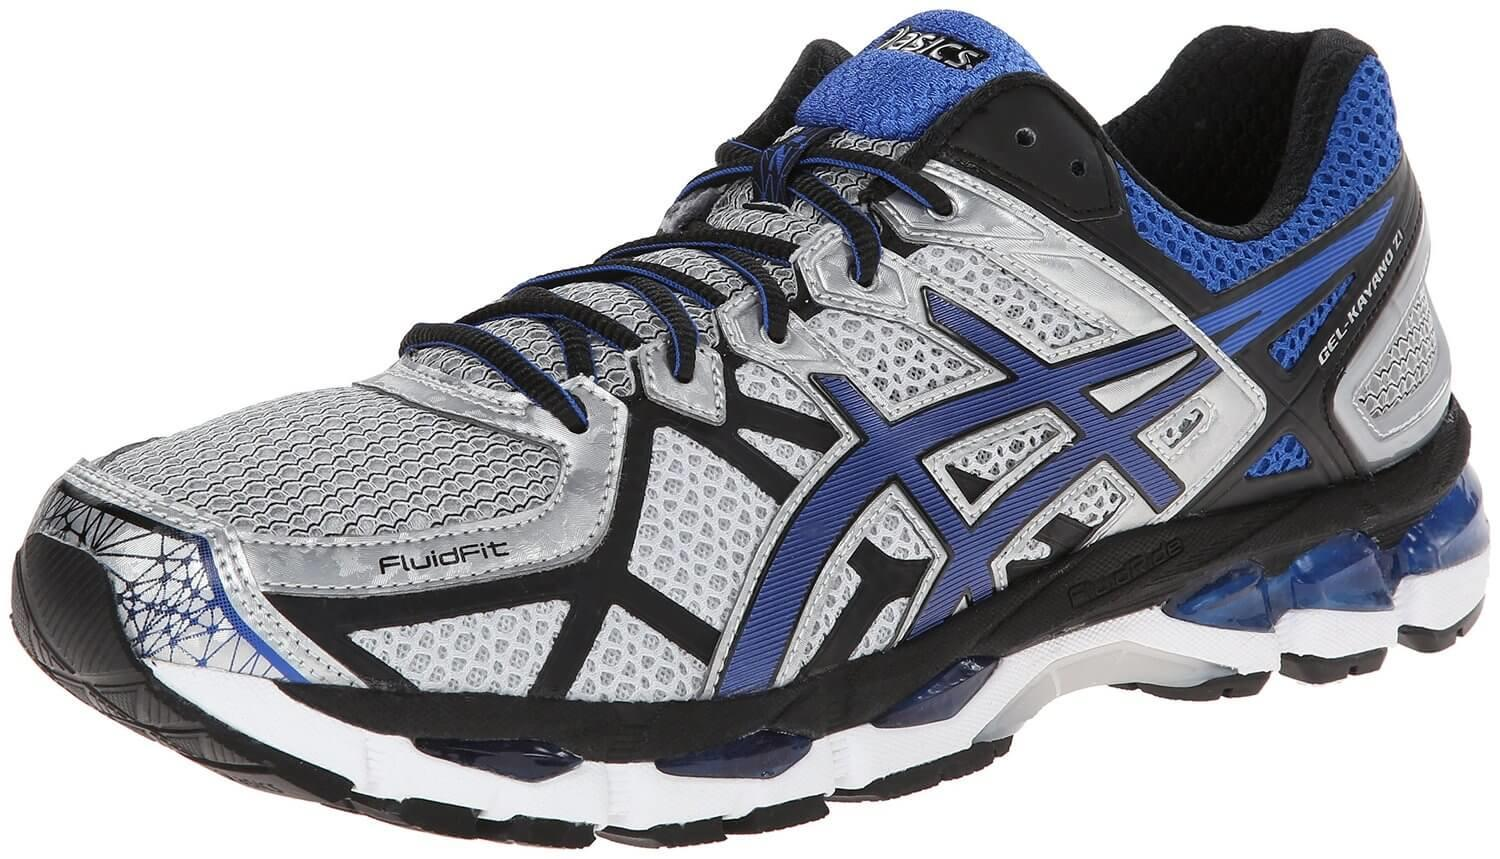 Asics Women S Shoes Gel Kayano Running Sneakers